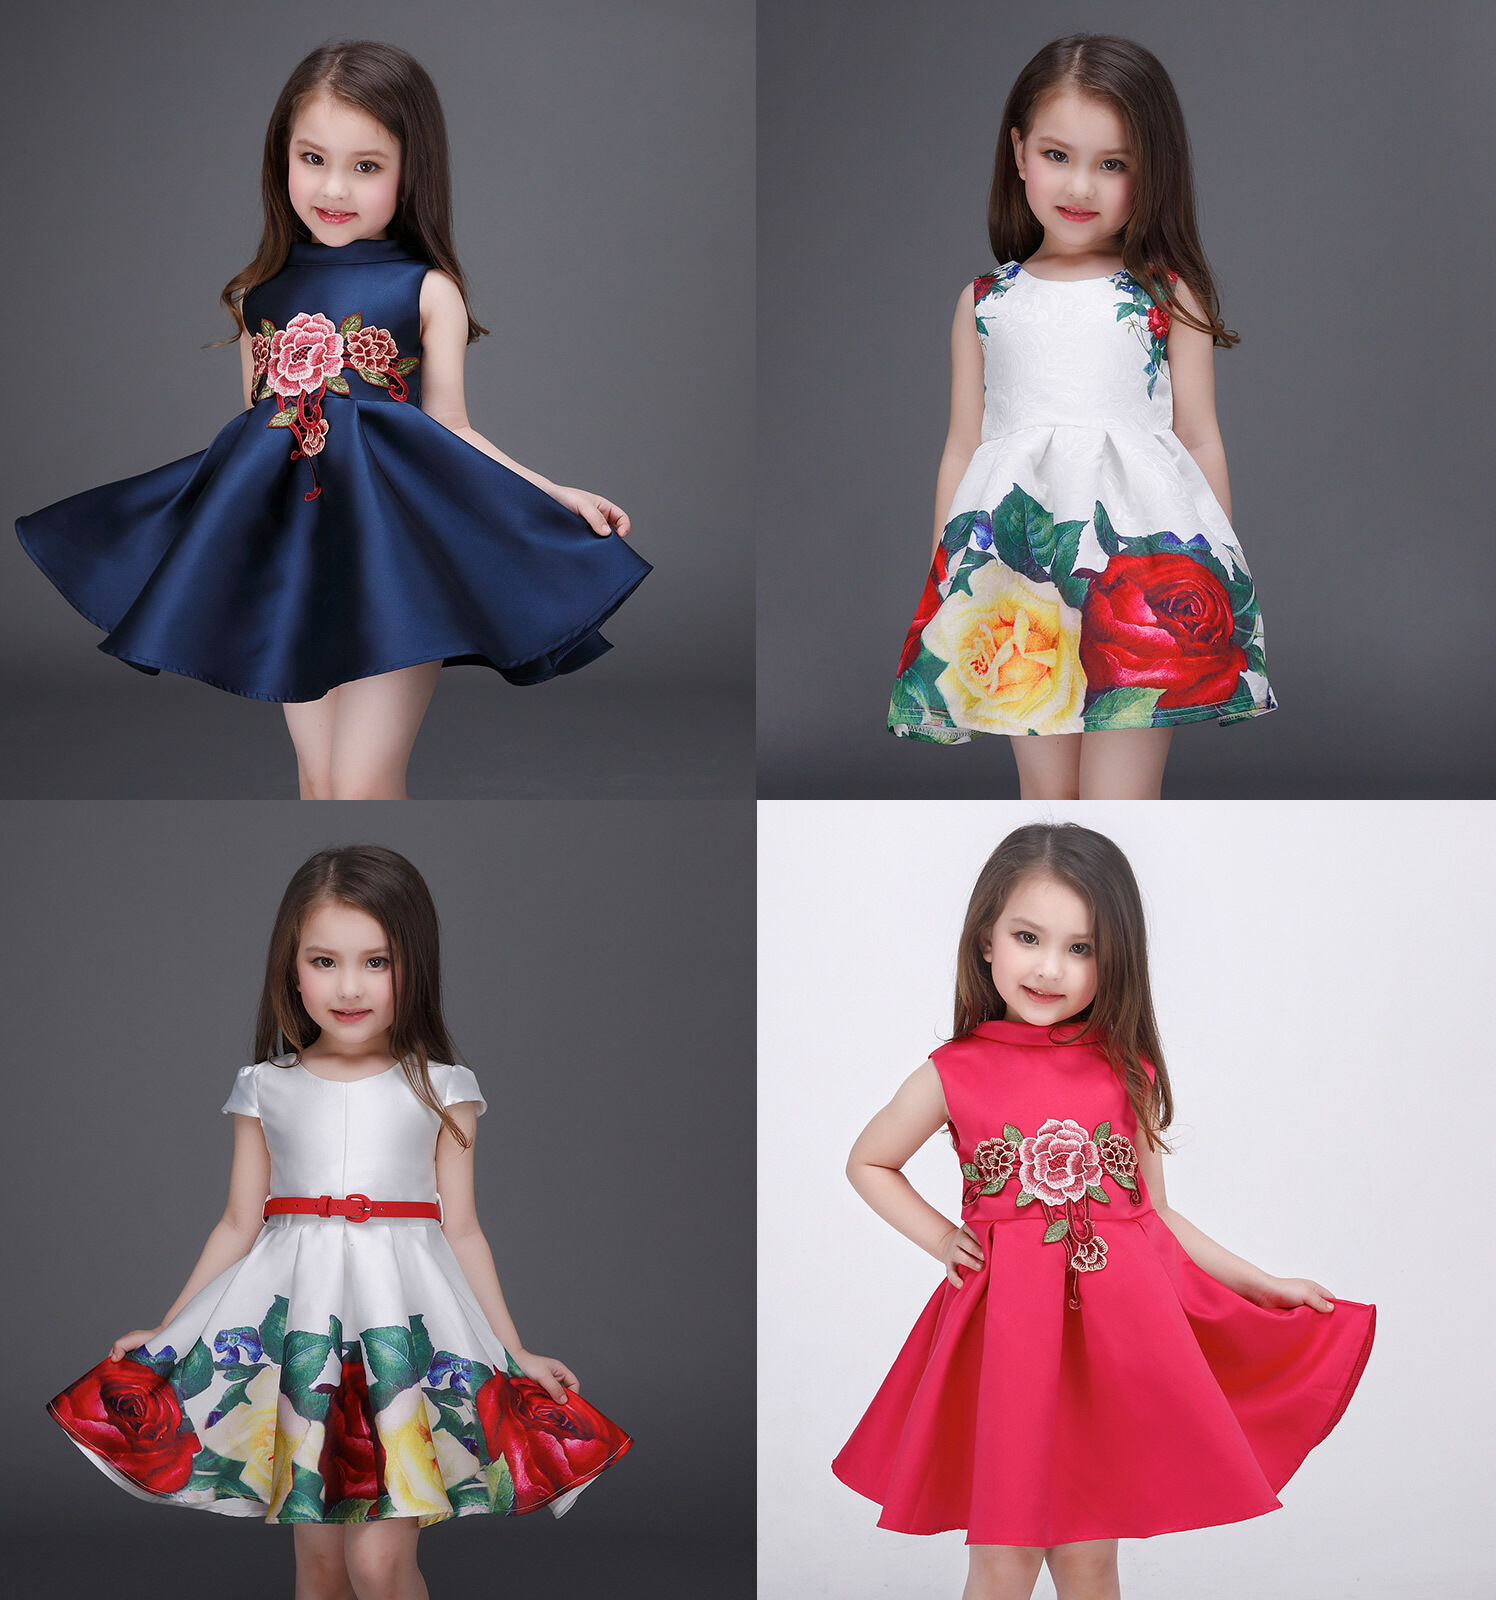 75410ec71287 Details about Fashion High-Grade Baby Kids Girls Princess Dress Flower Xmas Party  Wear Gown